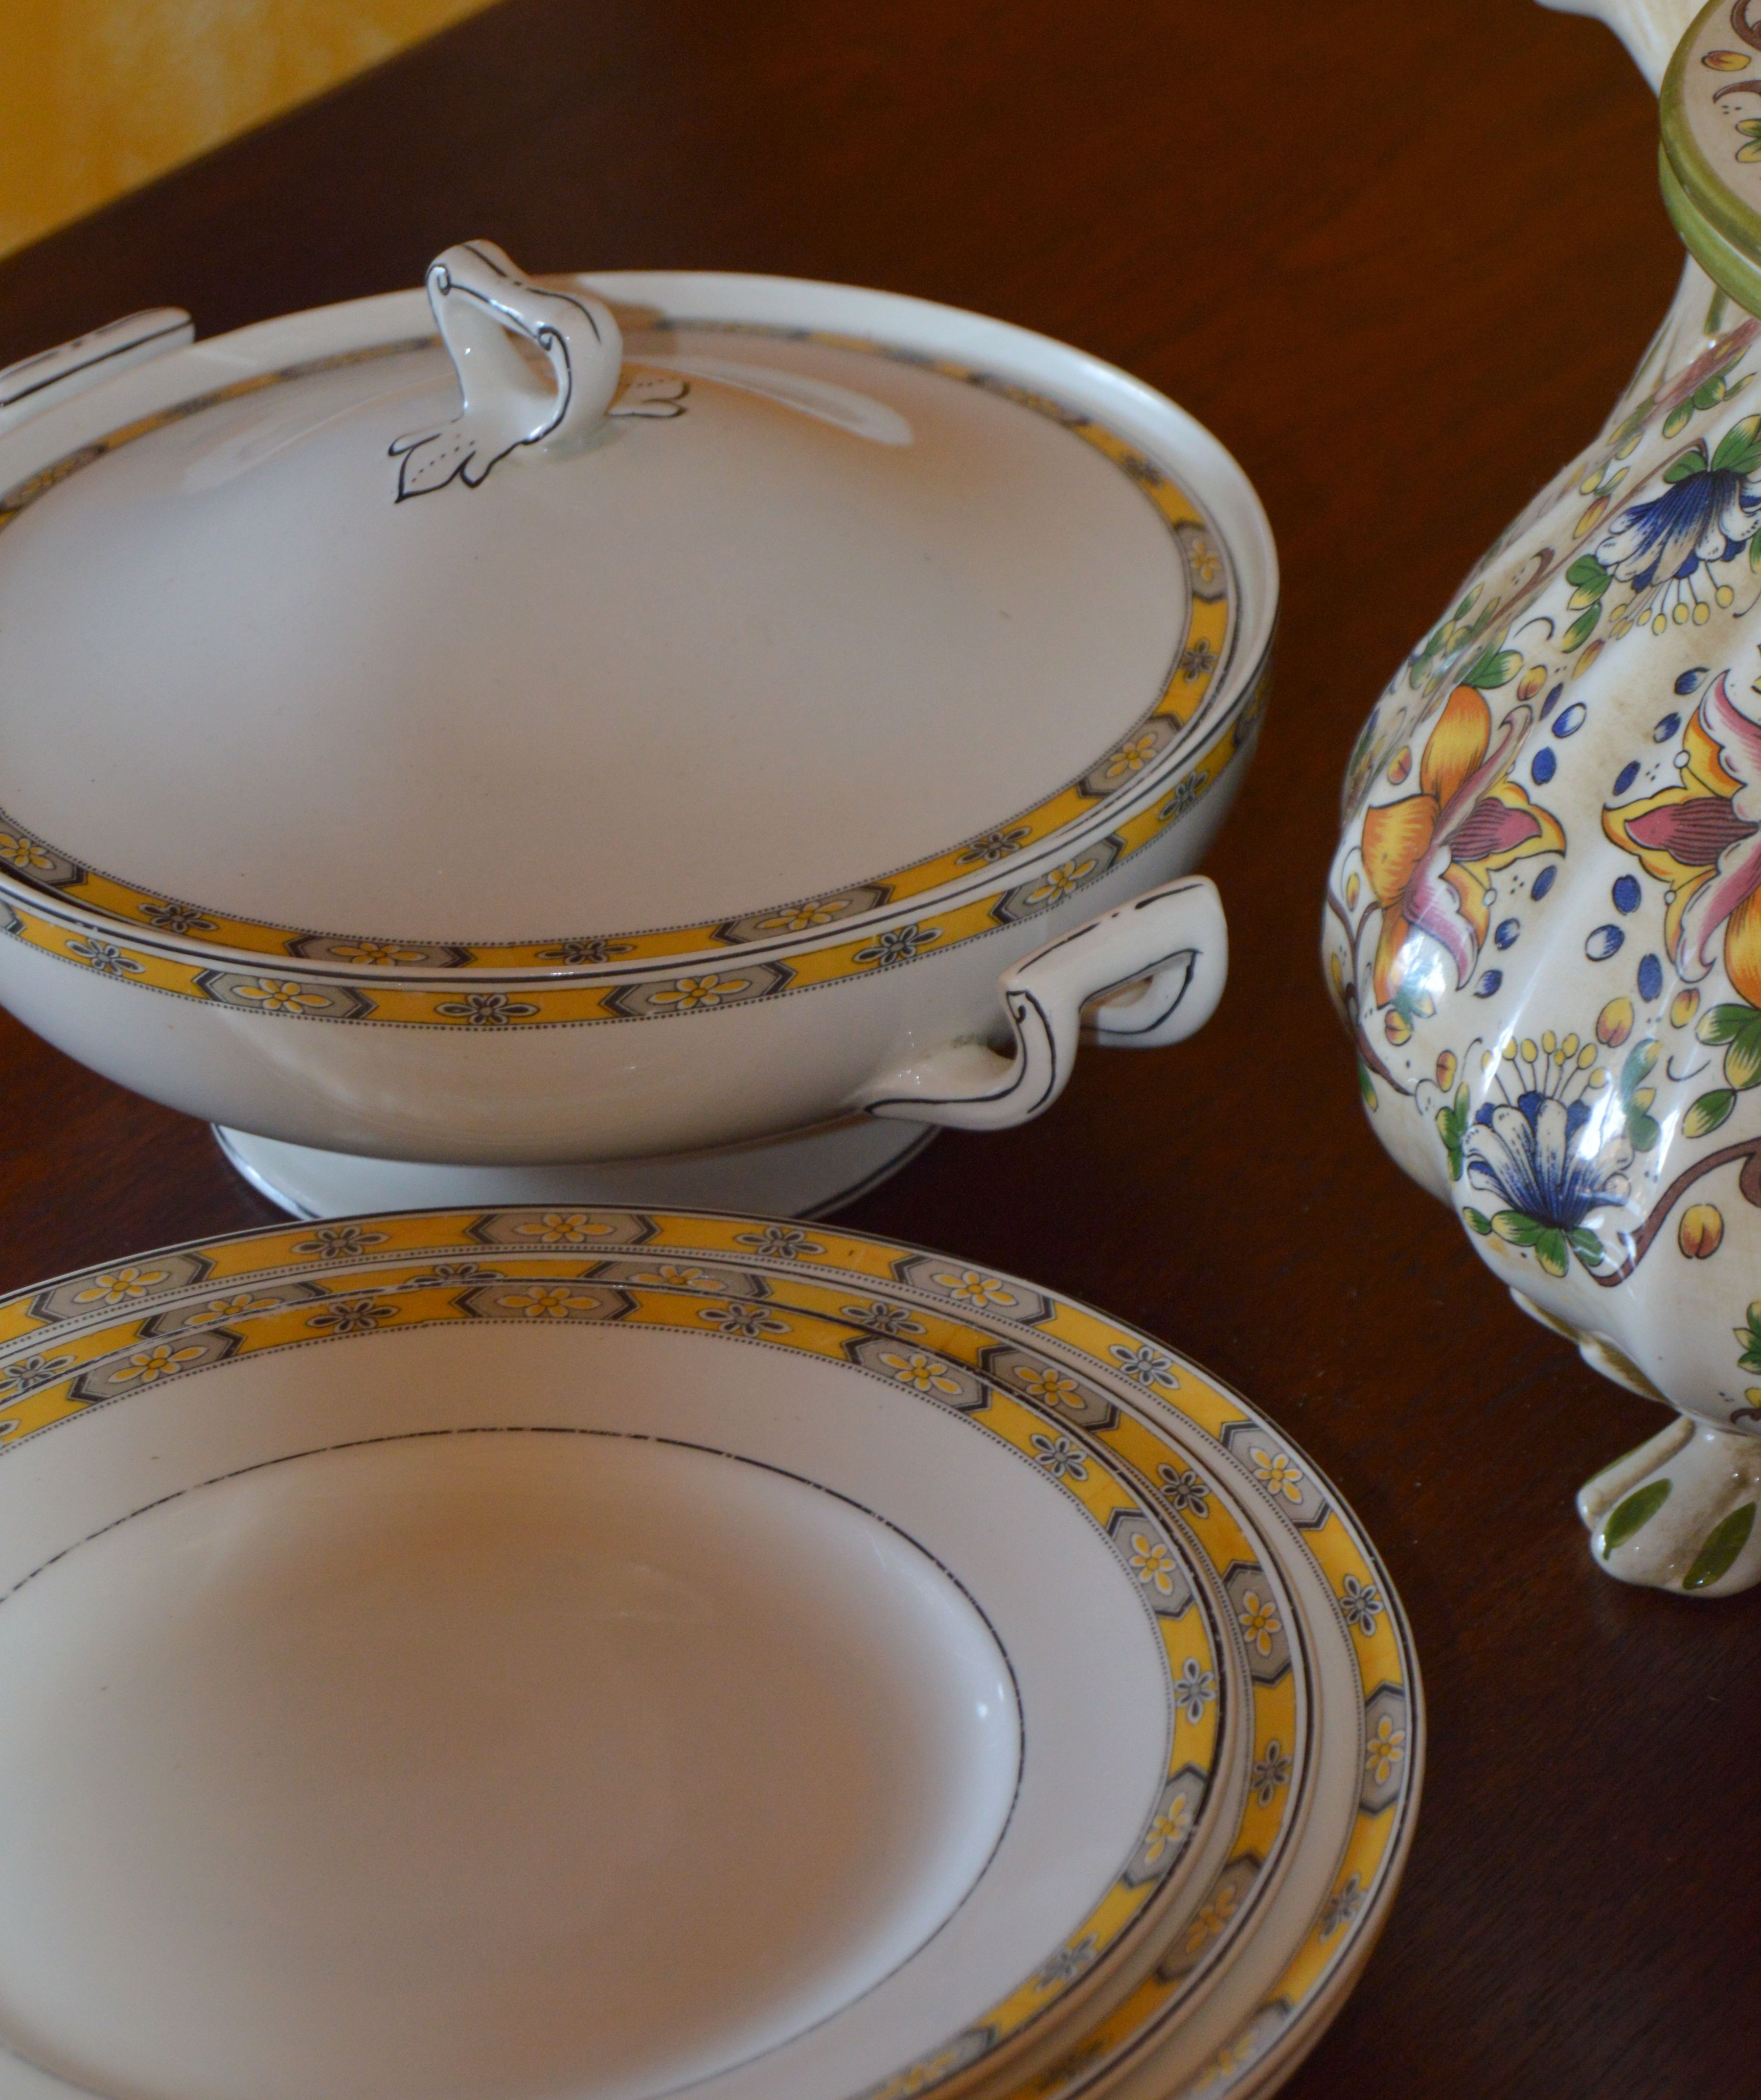 Wh Grindley England Chester Pattern China Plates This Is A Discontinued Pattern Crockery Beautiful China Plates